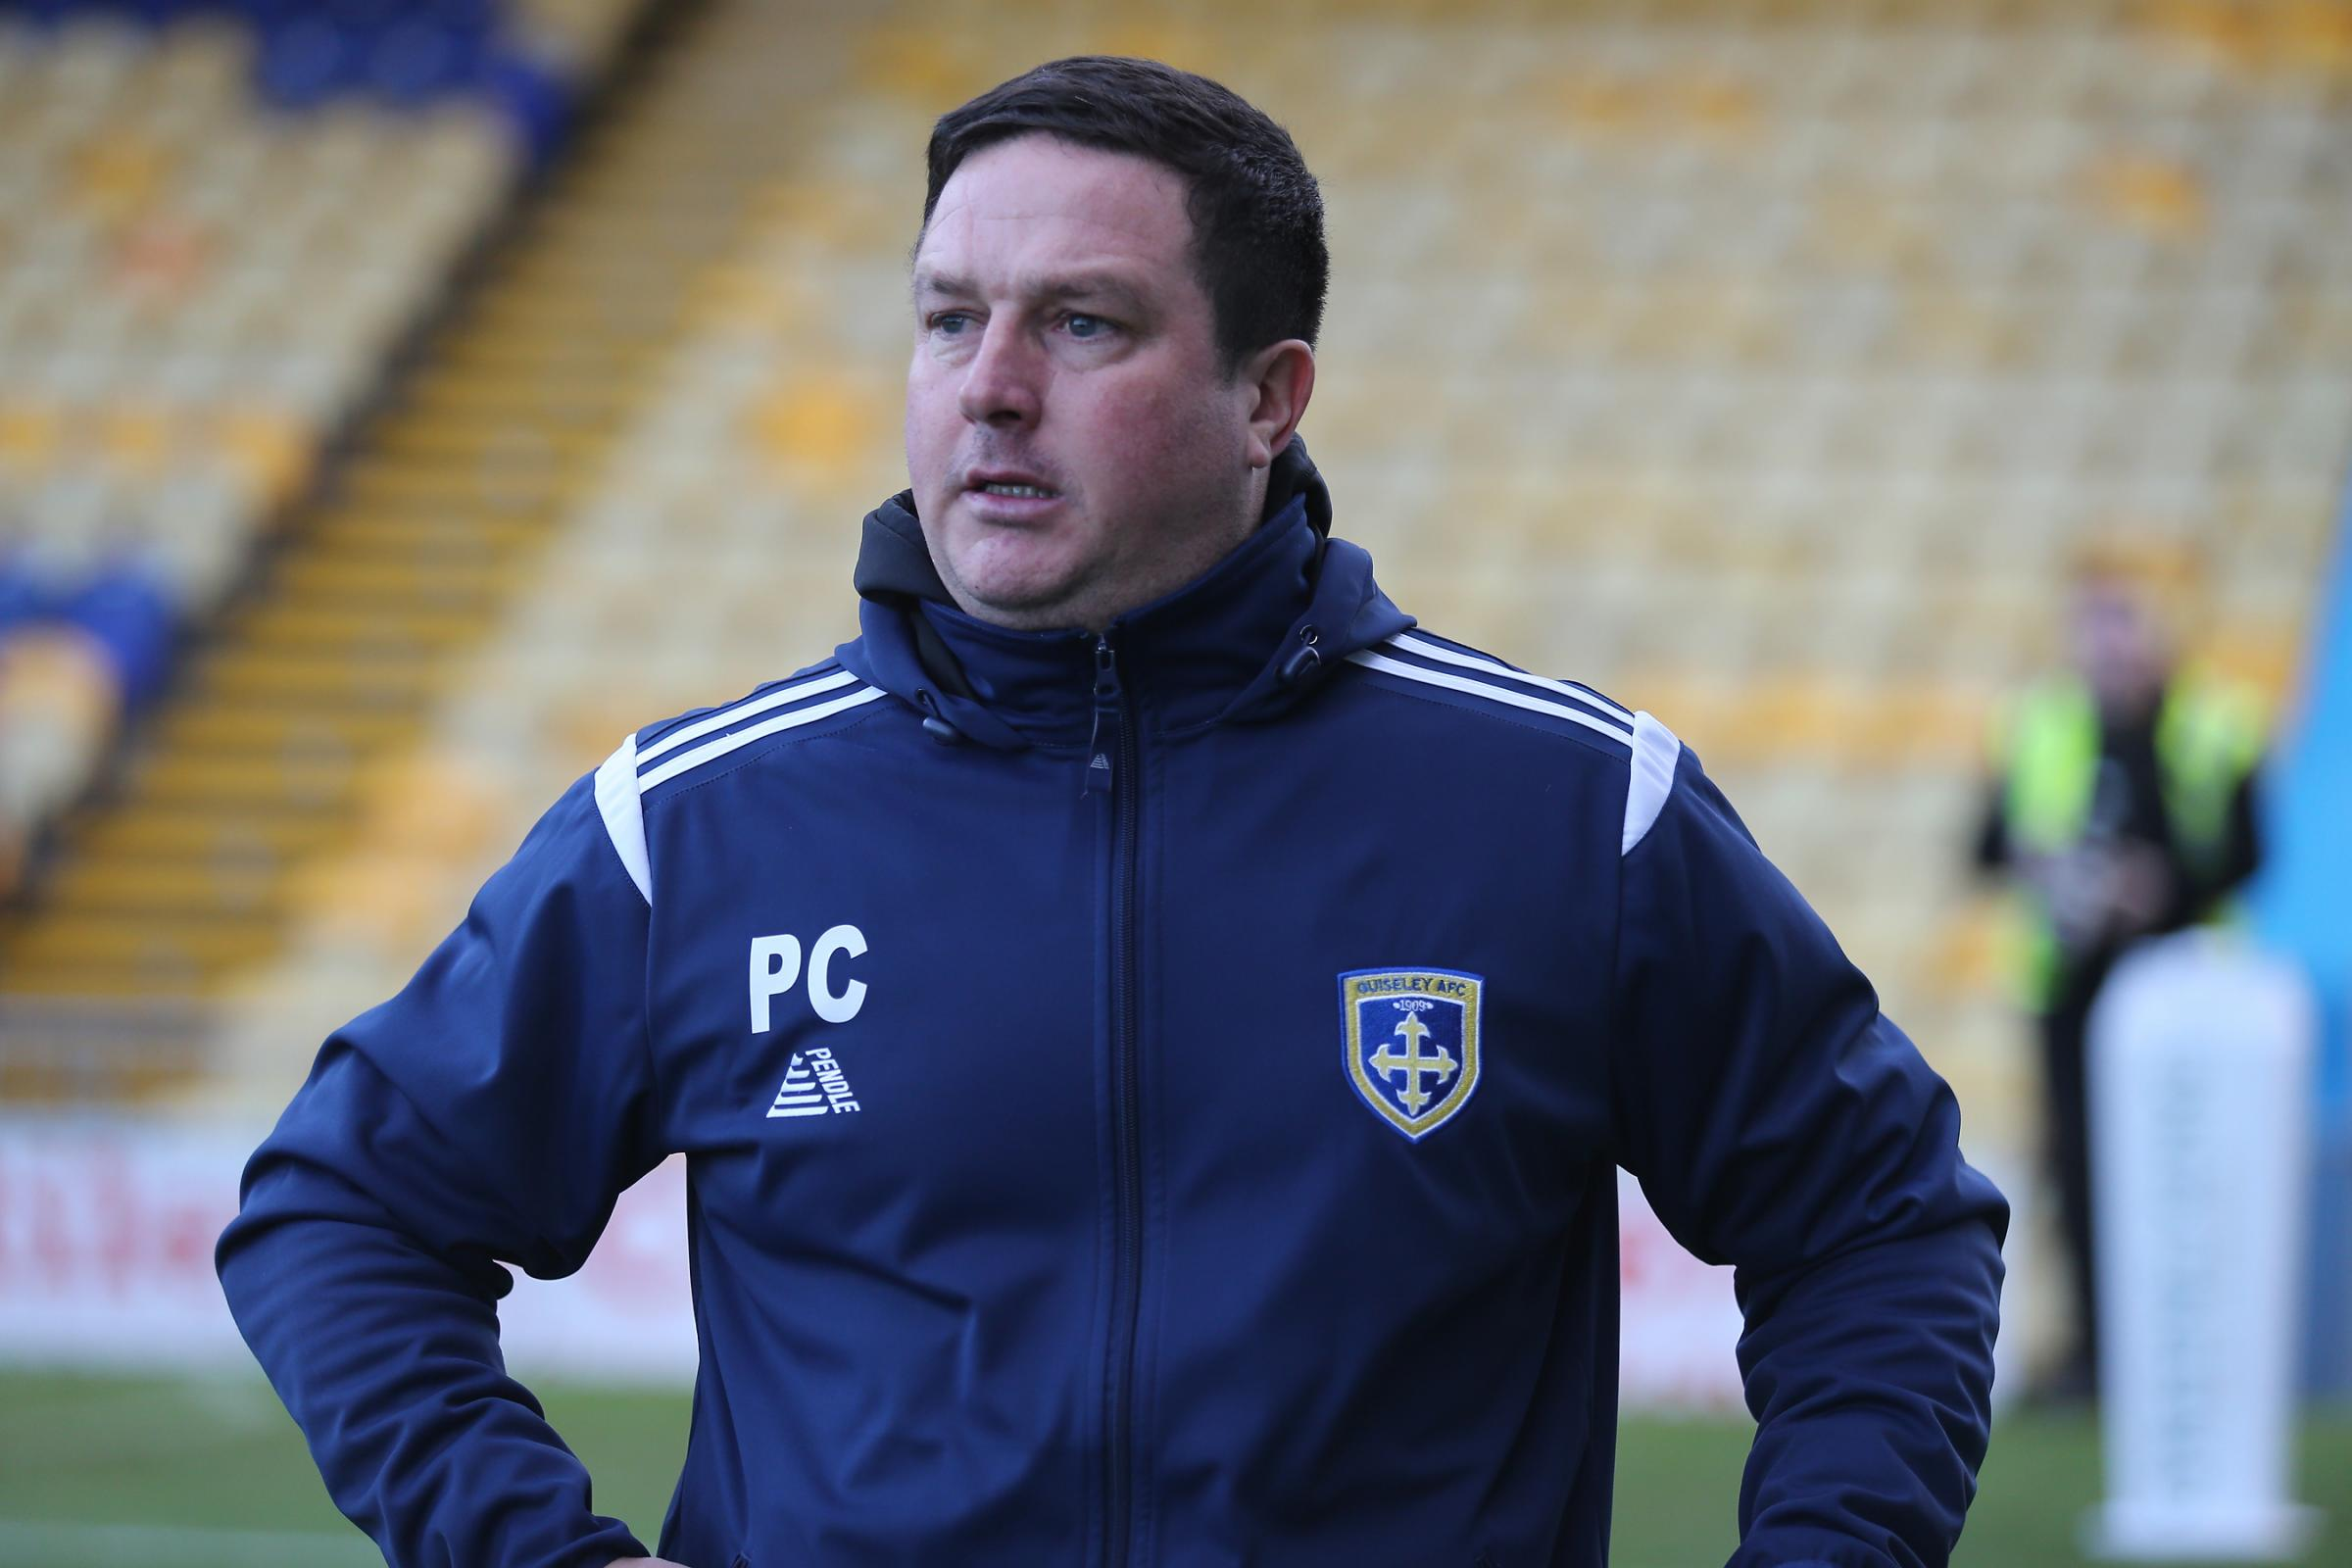 Paul Cox's Guiseley face a busy midweek